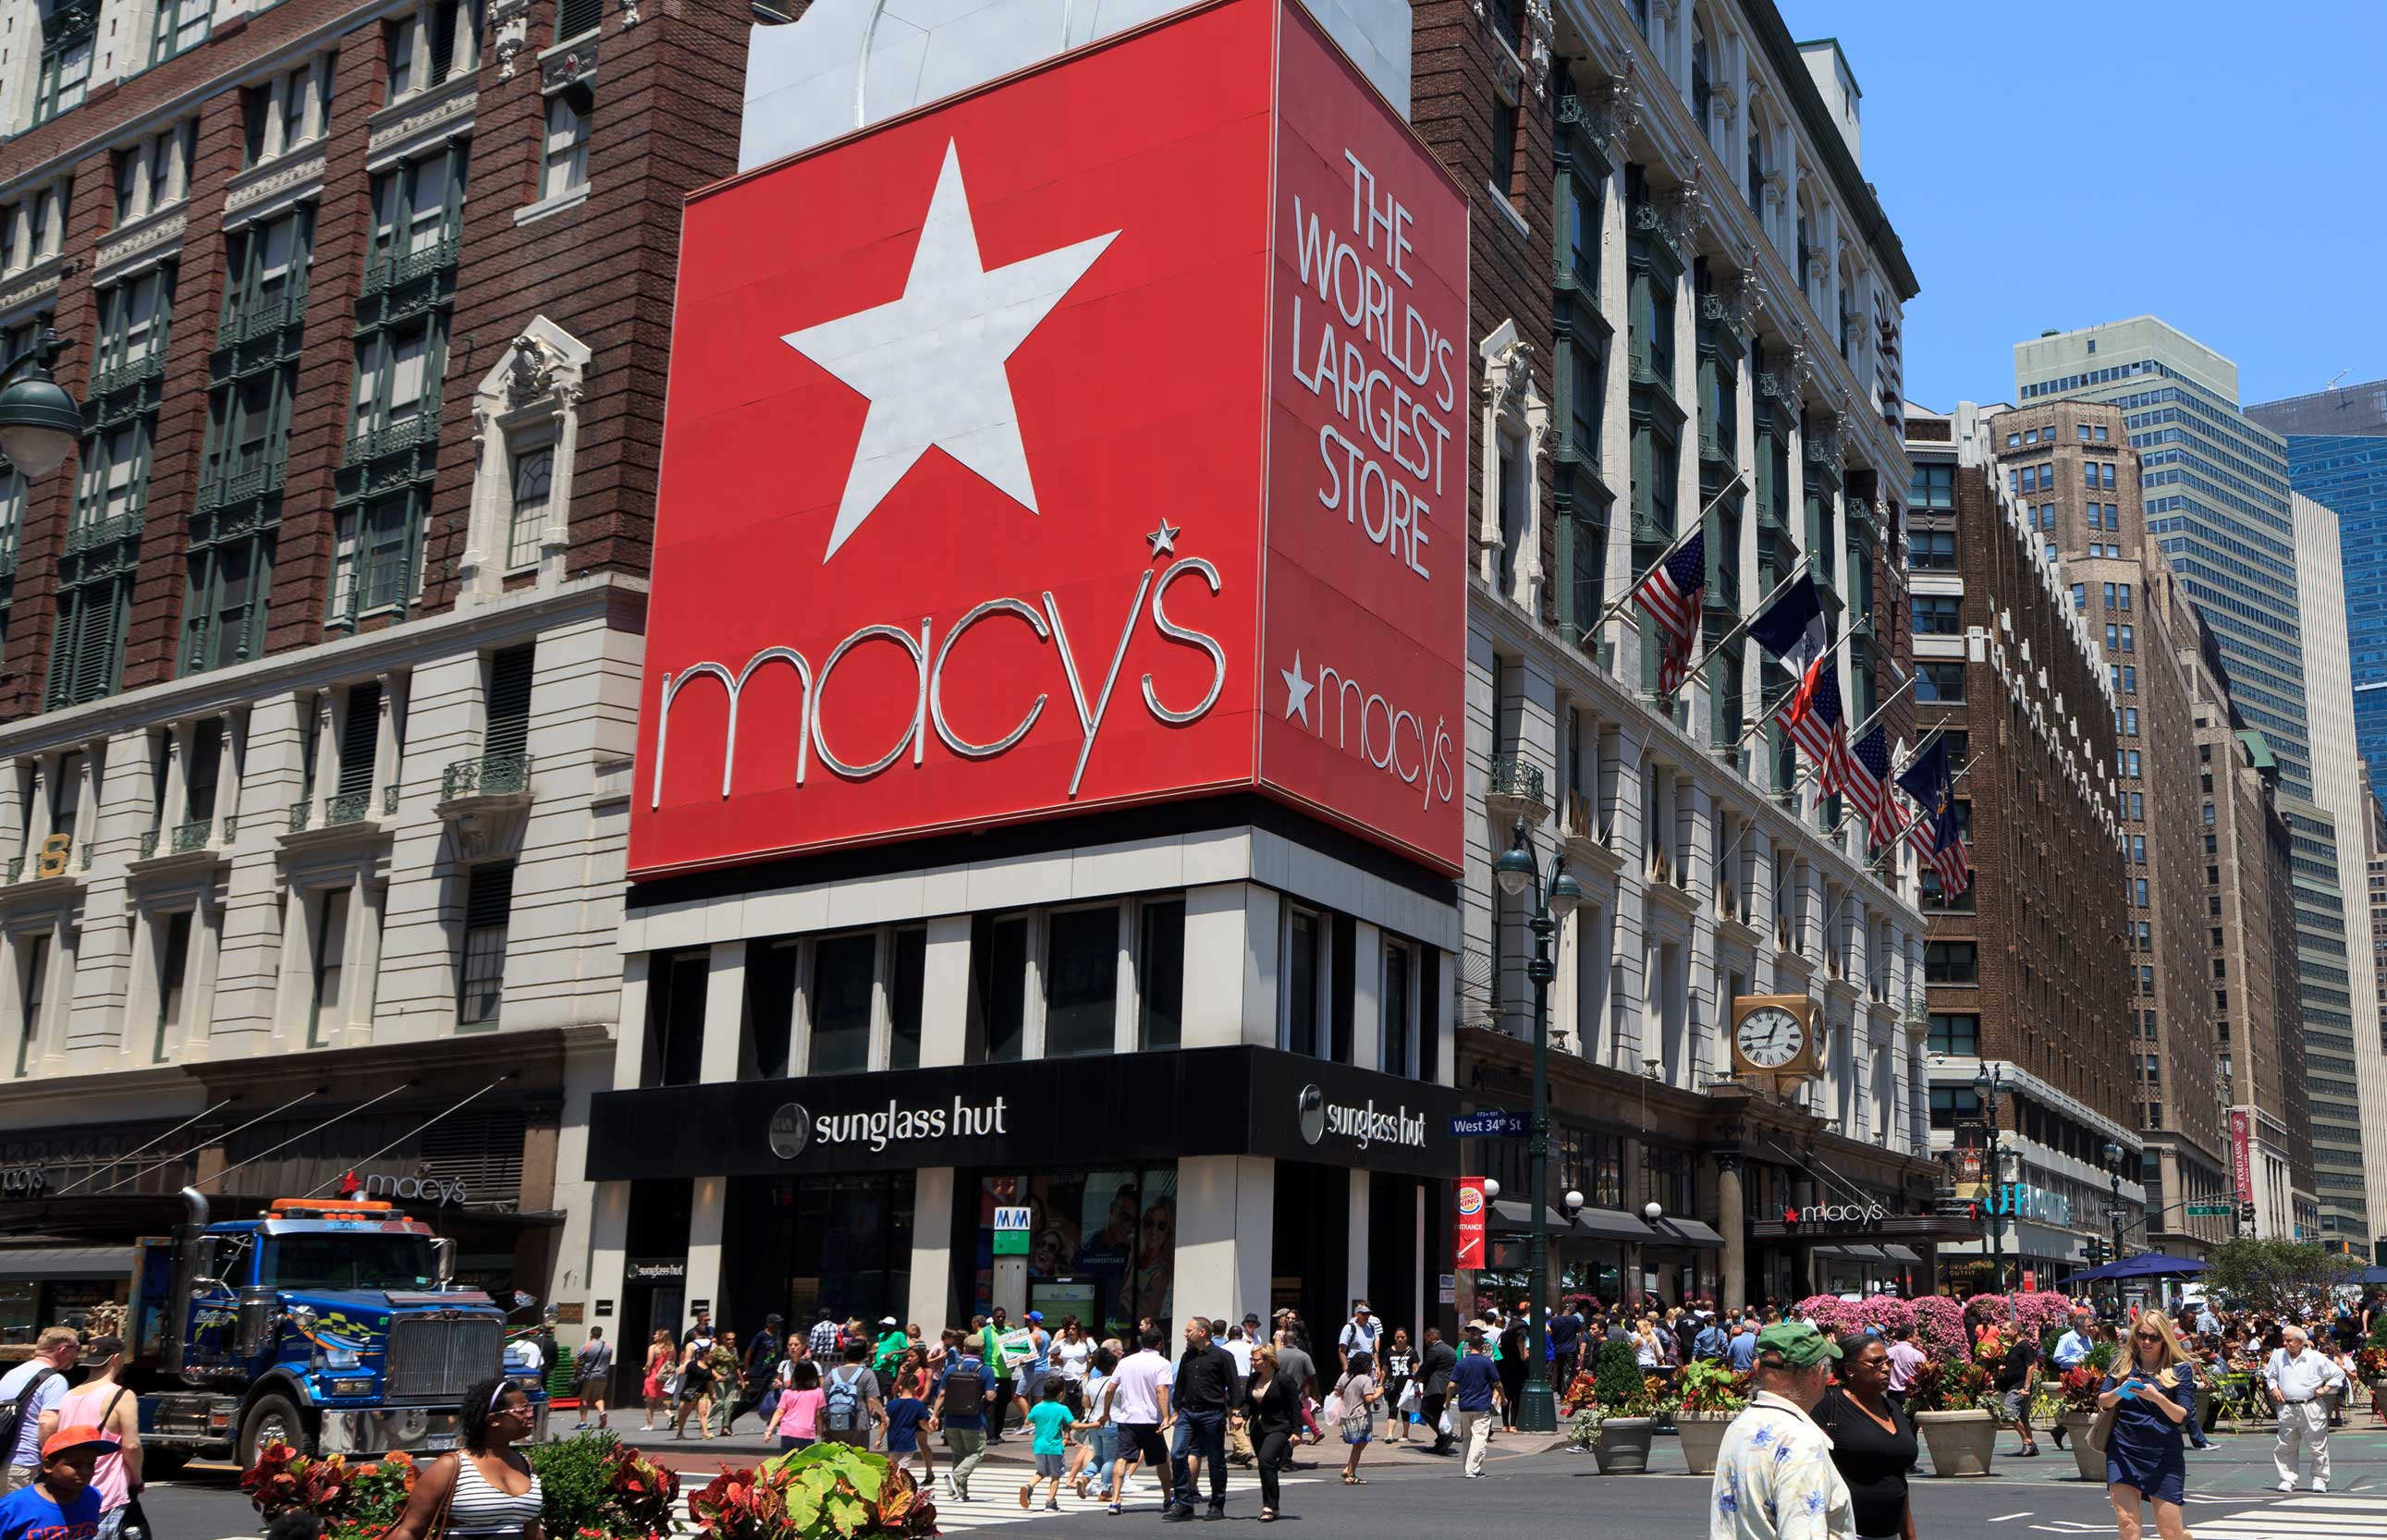 Sure, you've seen the Thanksgiving parade, but you've also probably shopped at Macy's. And if you do so regularly, these tips can help you save at Macy's.